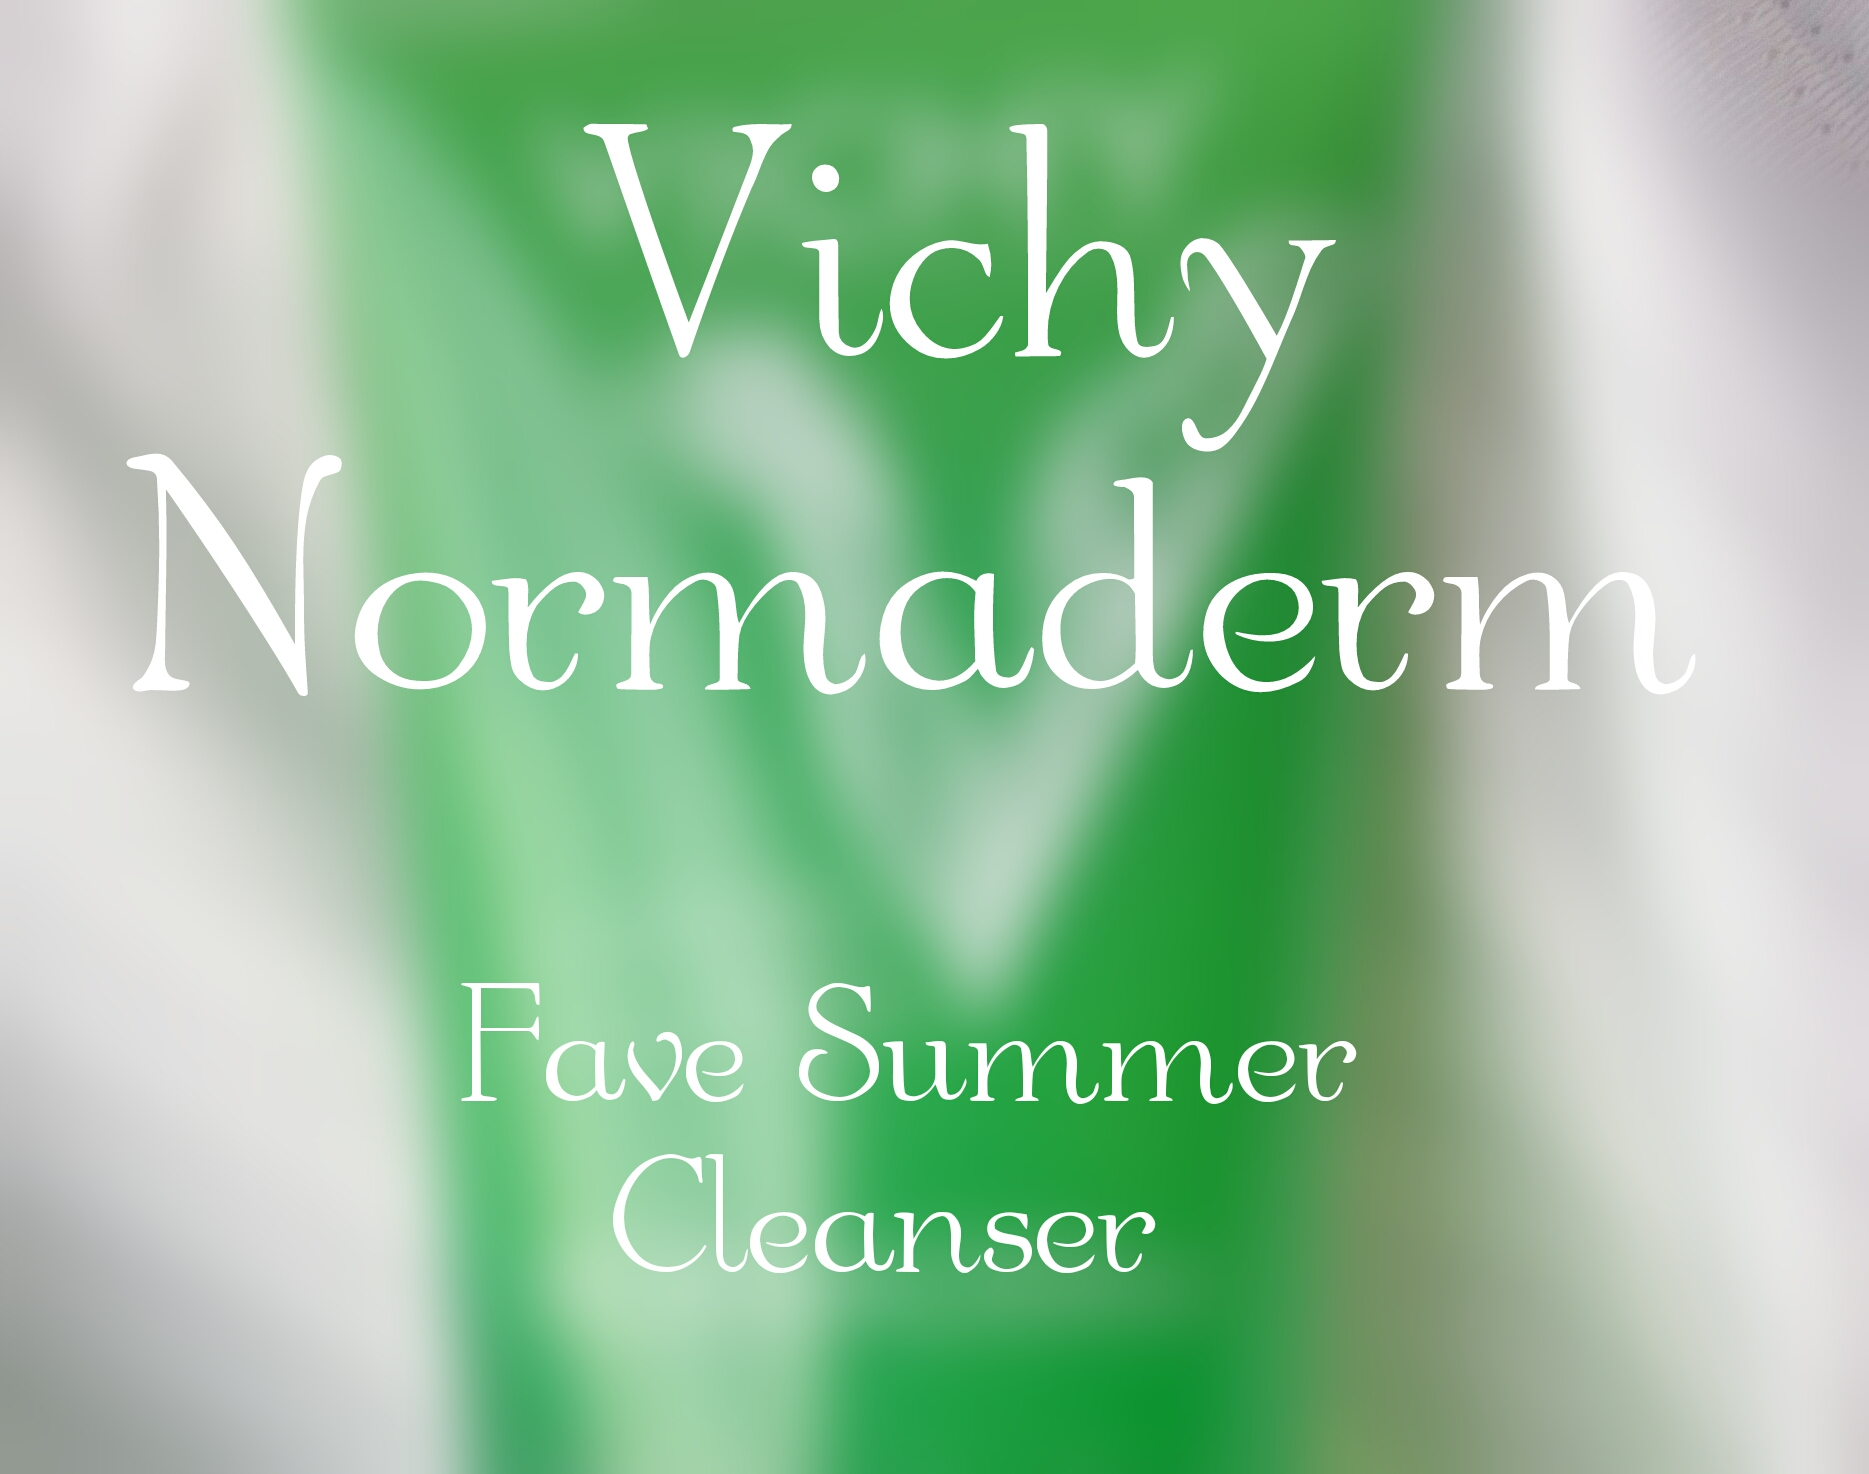 Vichy Normaderm Cleansing Gel review and price in India